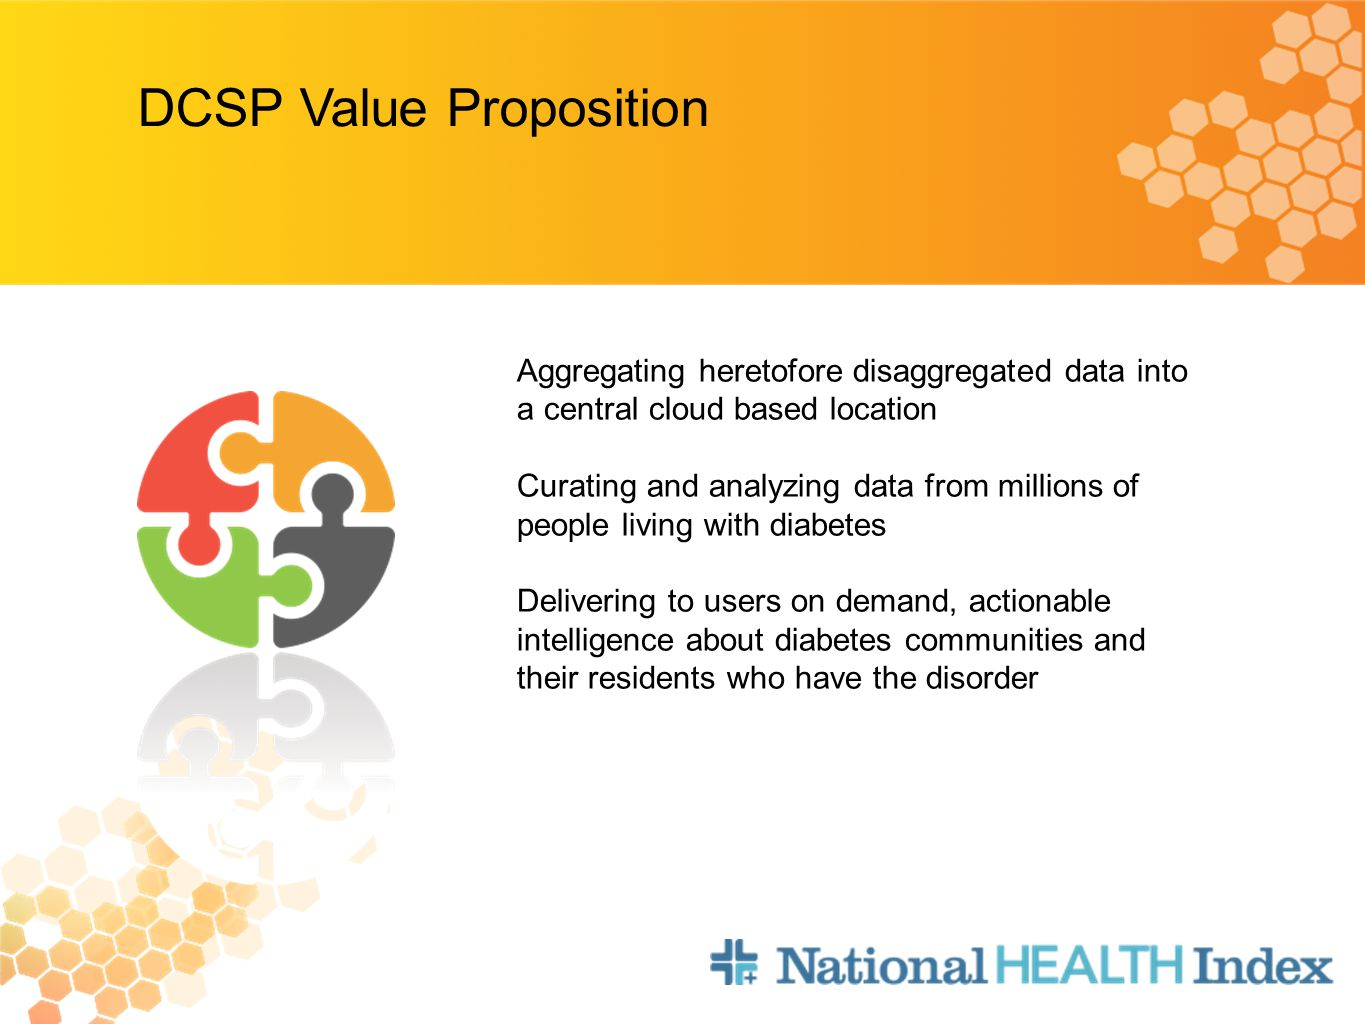 DCSP Value Proposition Aggregating heretofore disaggregated data into a central cloud based location Curating and analyzing data from millions of people living with diabetes Delivering to users on demand, actionable intelligence about diabetes communities and their residents who have the disorder